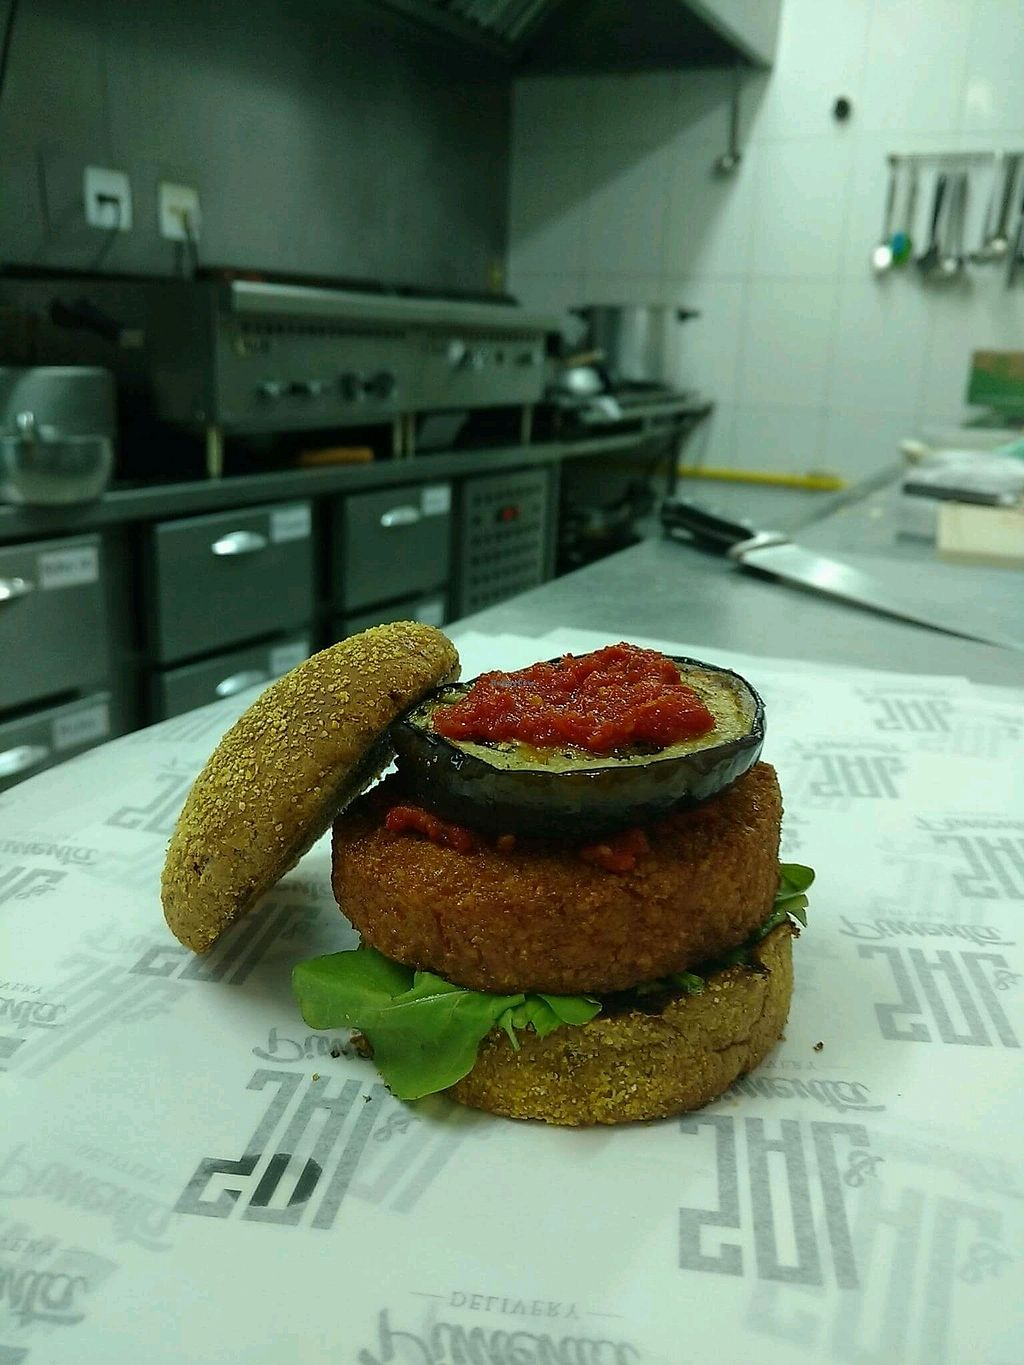 "Photo of Sal & Pimenta Delivery  by <a href=""/members/profile/VictoriaZircker"">VictoriaZircker</a> <br/>Vegan burger: cocoa bun, arugula, chickpea patty, sun dried tomatoes pesto, red onion and grilled eggplant <br/> December 30, 2017  - <a href='/contact/abuse/image/108195/340679'>Report</a>"